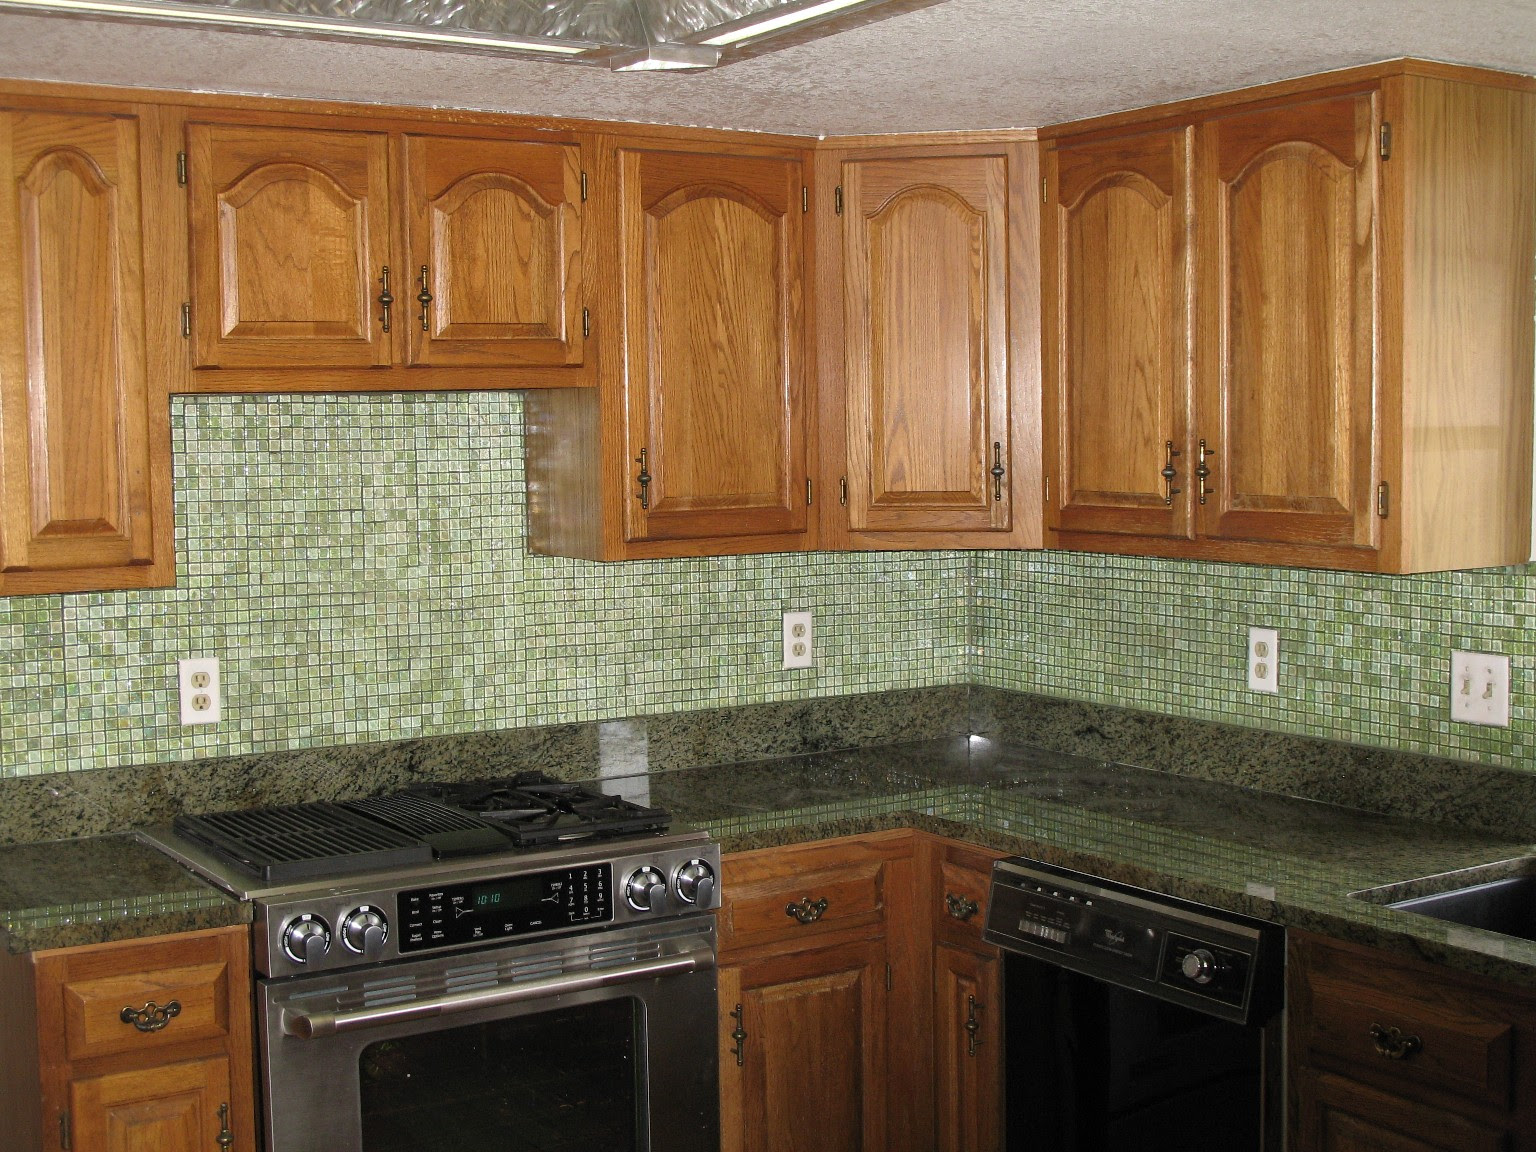 Glass Tile Backsplash Ideas